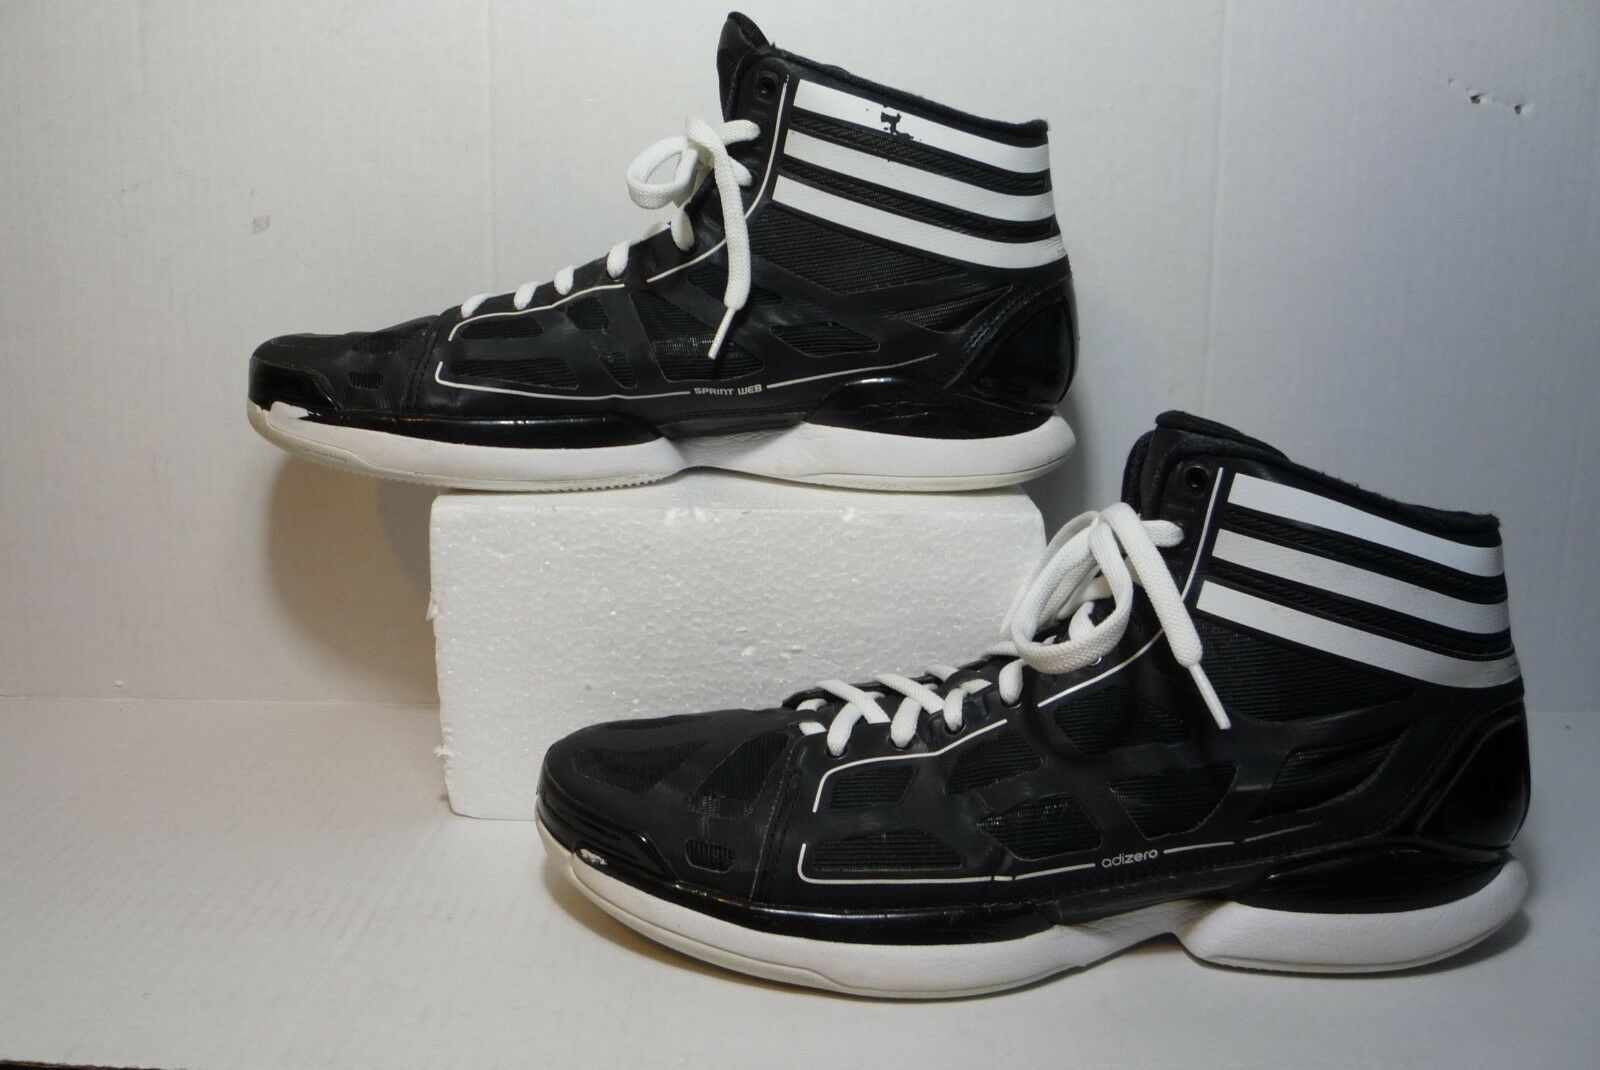 ADIDAS BLACK WHITE BASKETBALL SHOES G21732 Men's Comfortable Special limited time